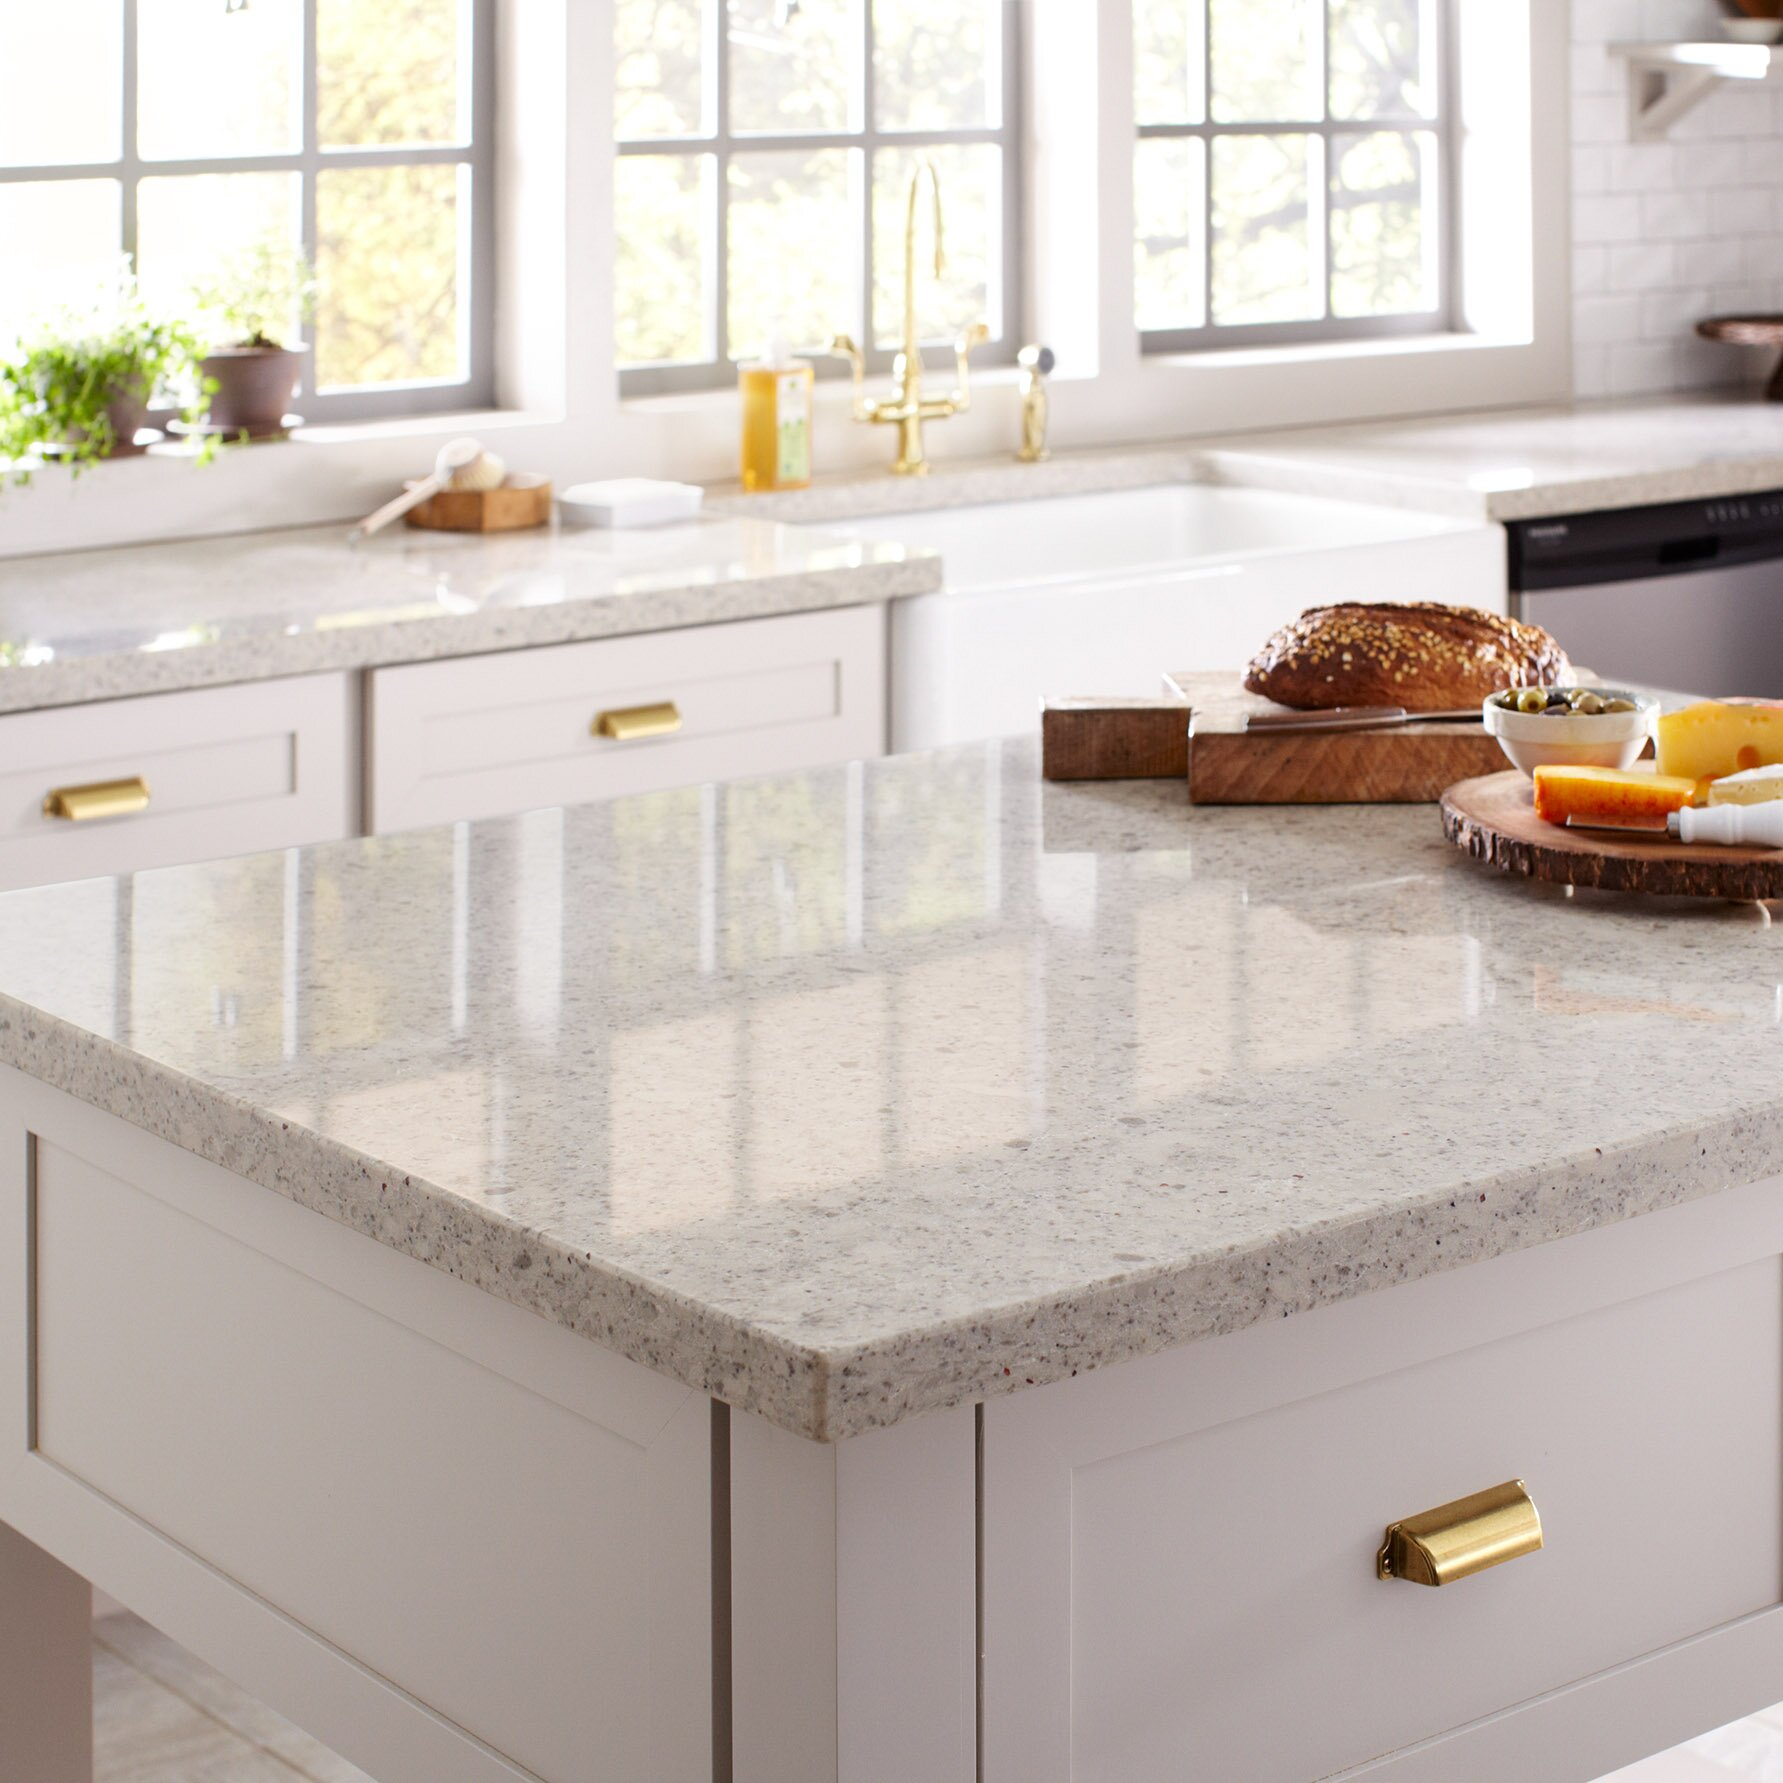 How To Choose Between Quartz Or Granite Kitchen Countertops